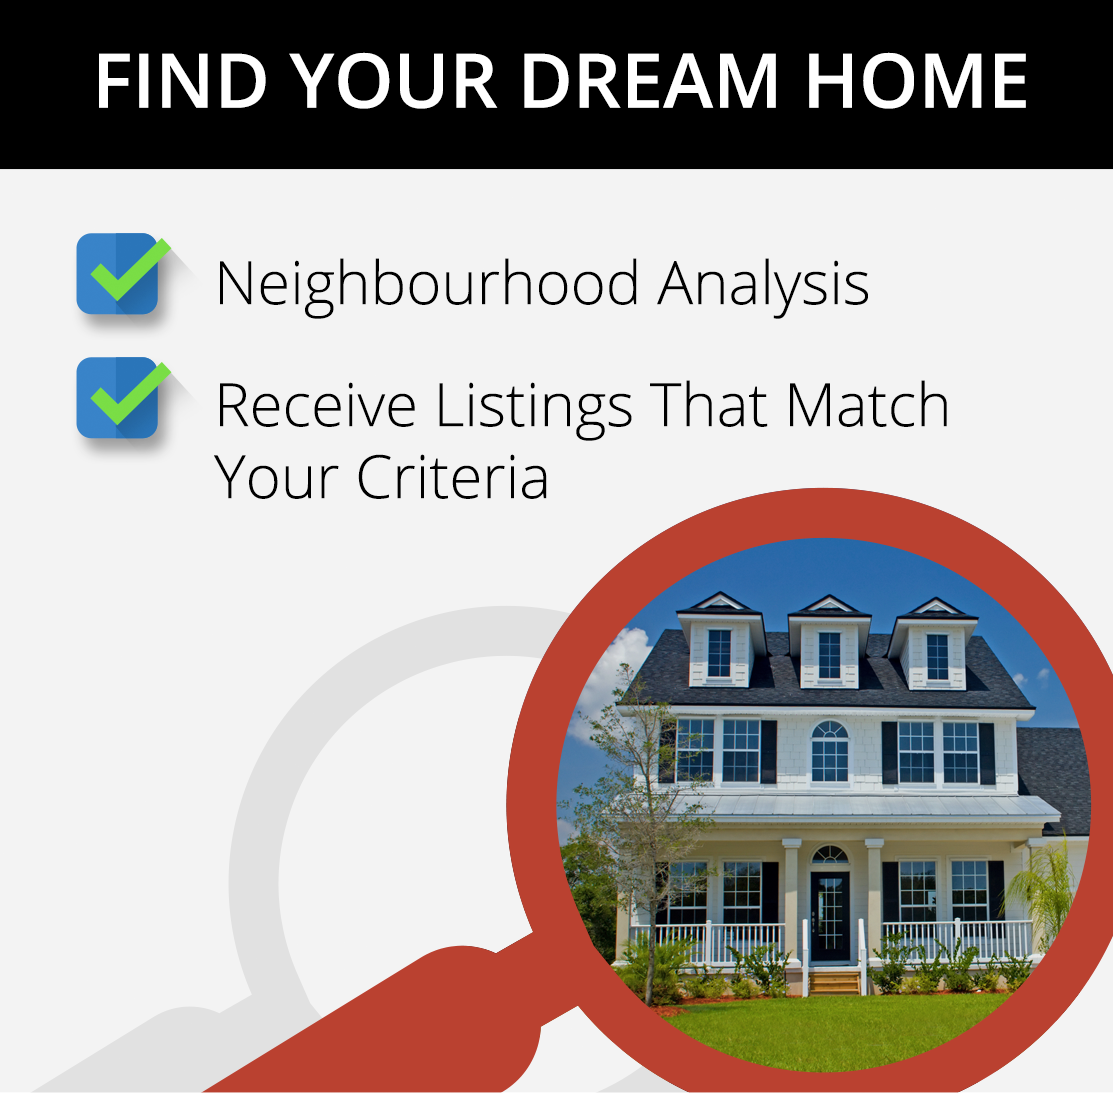 Receive Listings That Match Your Criteria